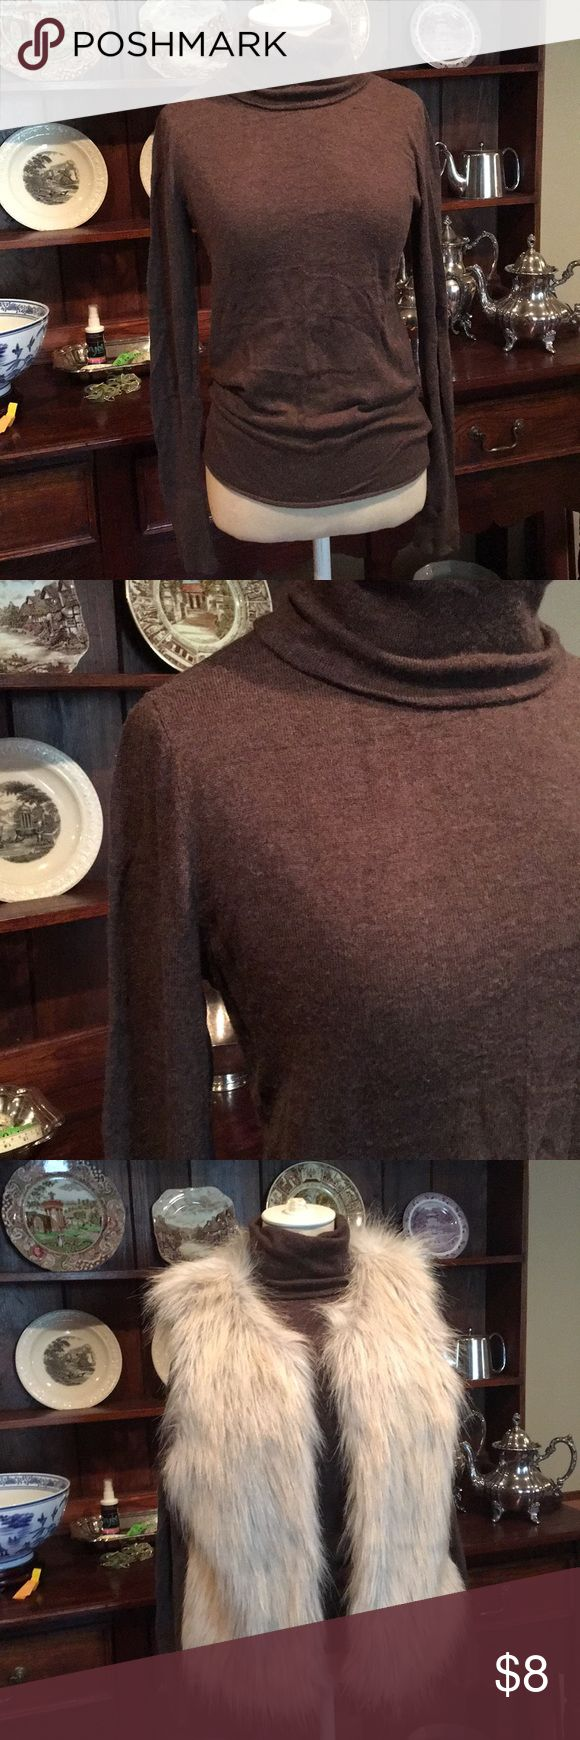 Mossimo Long Sleeve Turtle Neck Brown long sleeve turtle neck light sweater from Mossimo. This pairs perfectly with our Sanctuary Faux Fur Vest!!! 😉 Mossimo Supply Co. Sweaters Cowl & Turtlenecks